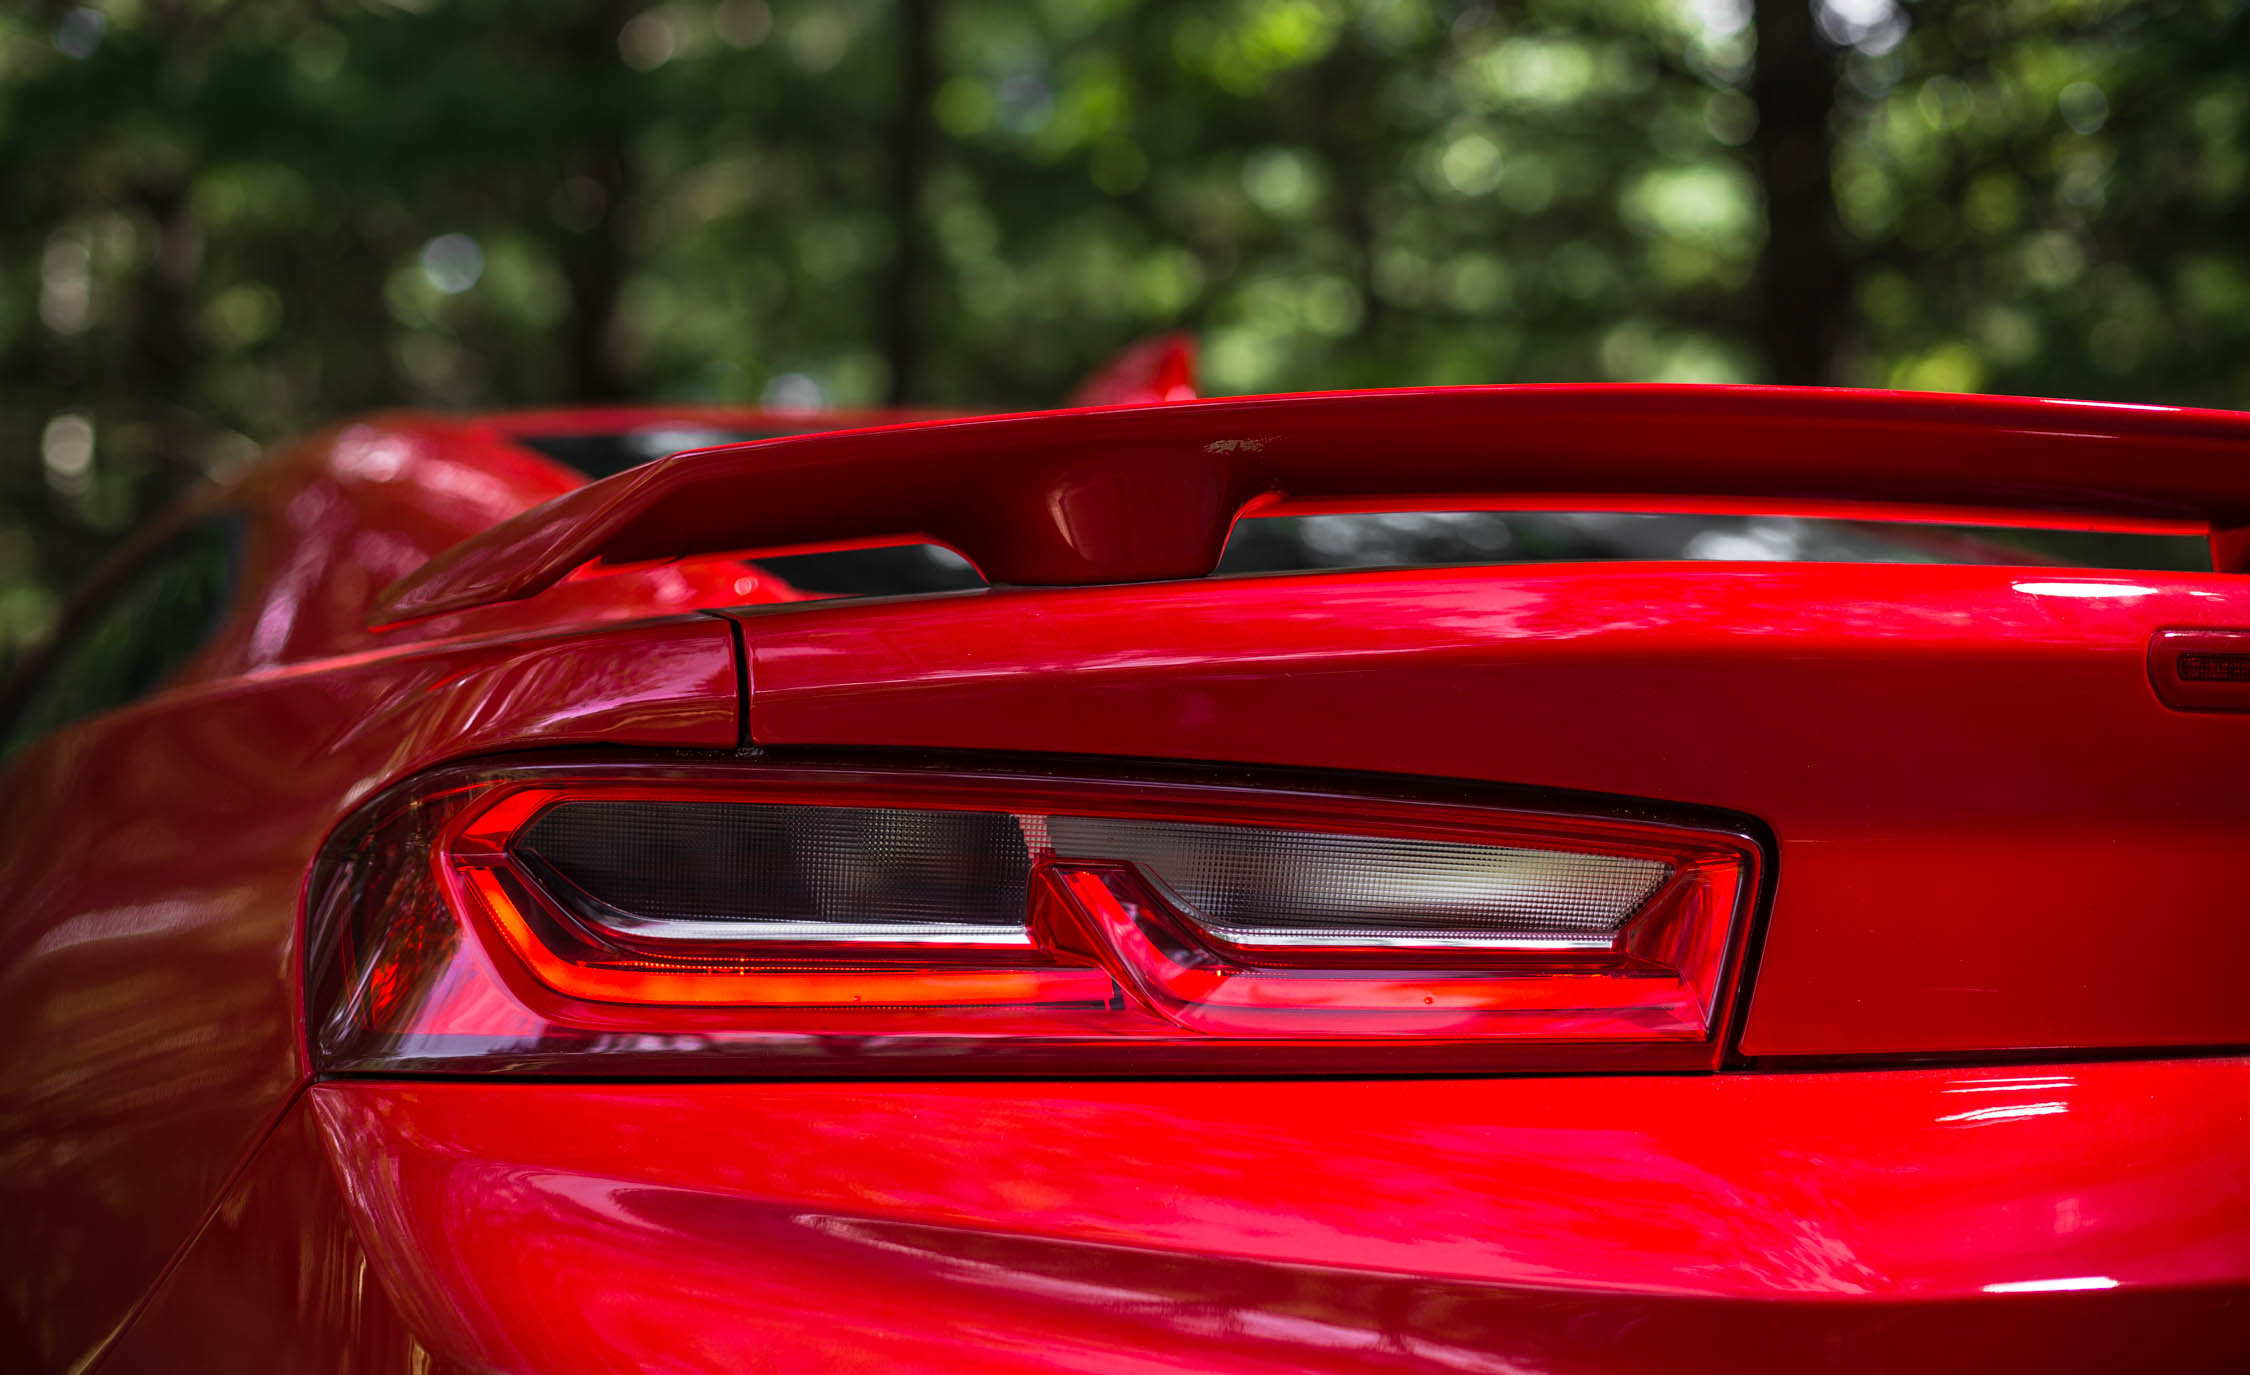 2016 Chevrolet Camaro SS Exterior Left Taillight